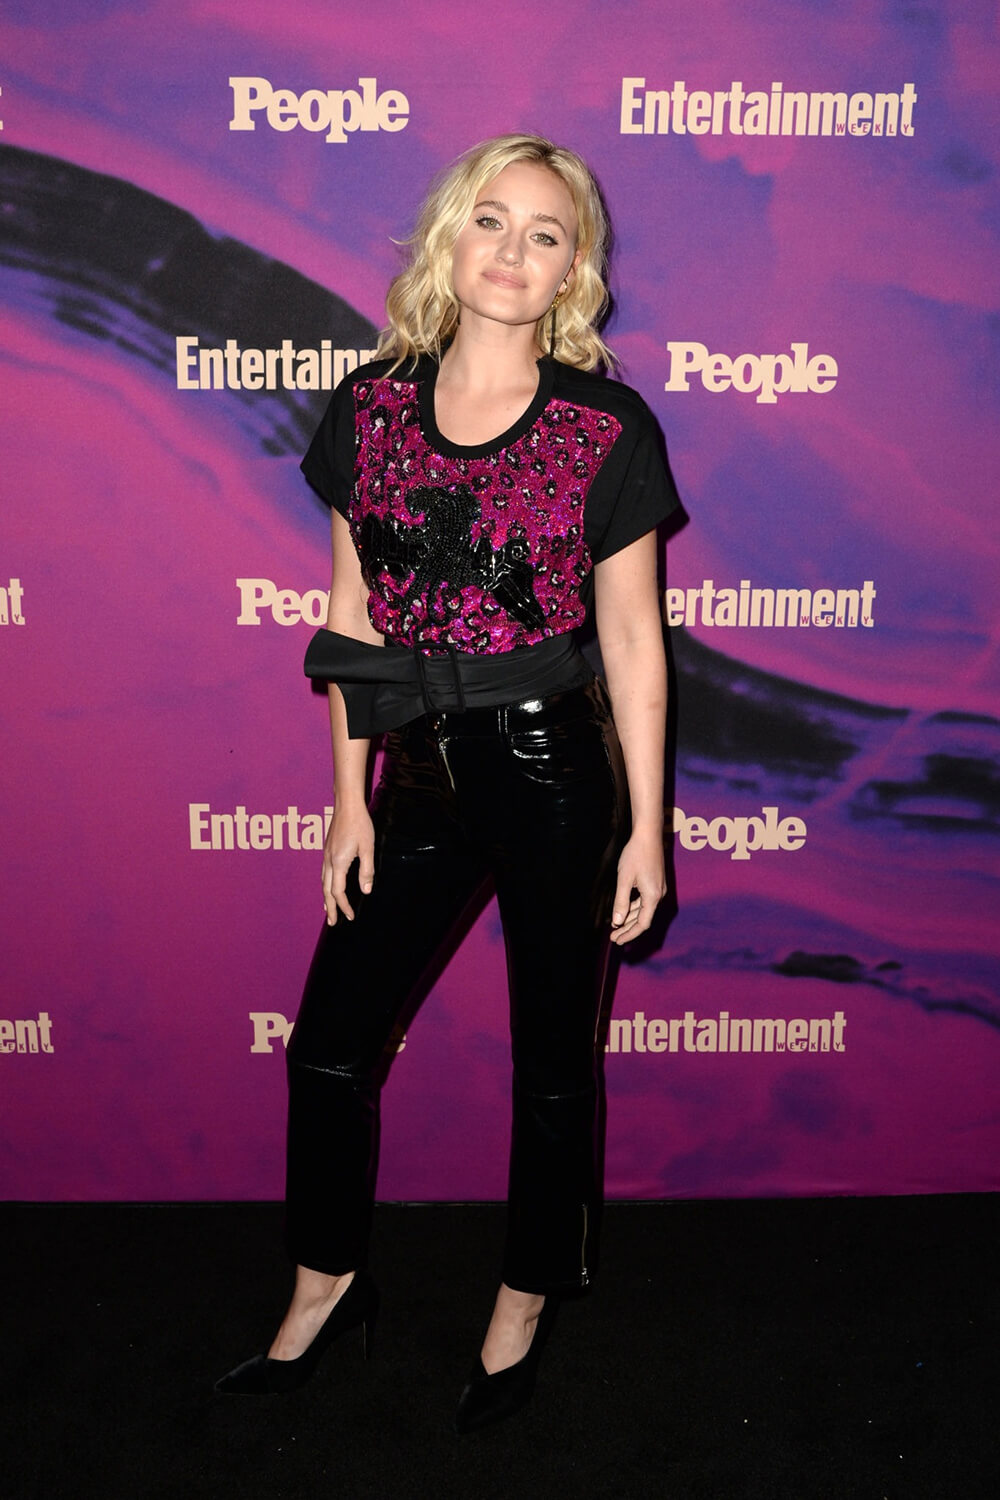 Amanda AJ Michalka attends Entertainment Weekly & People New York Upfronts Party